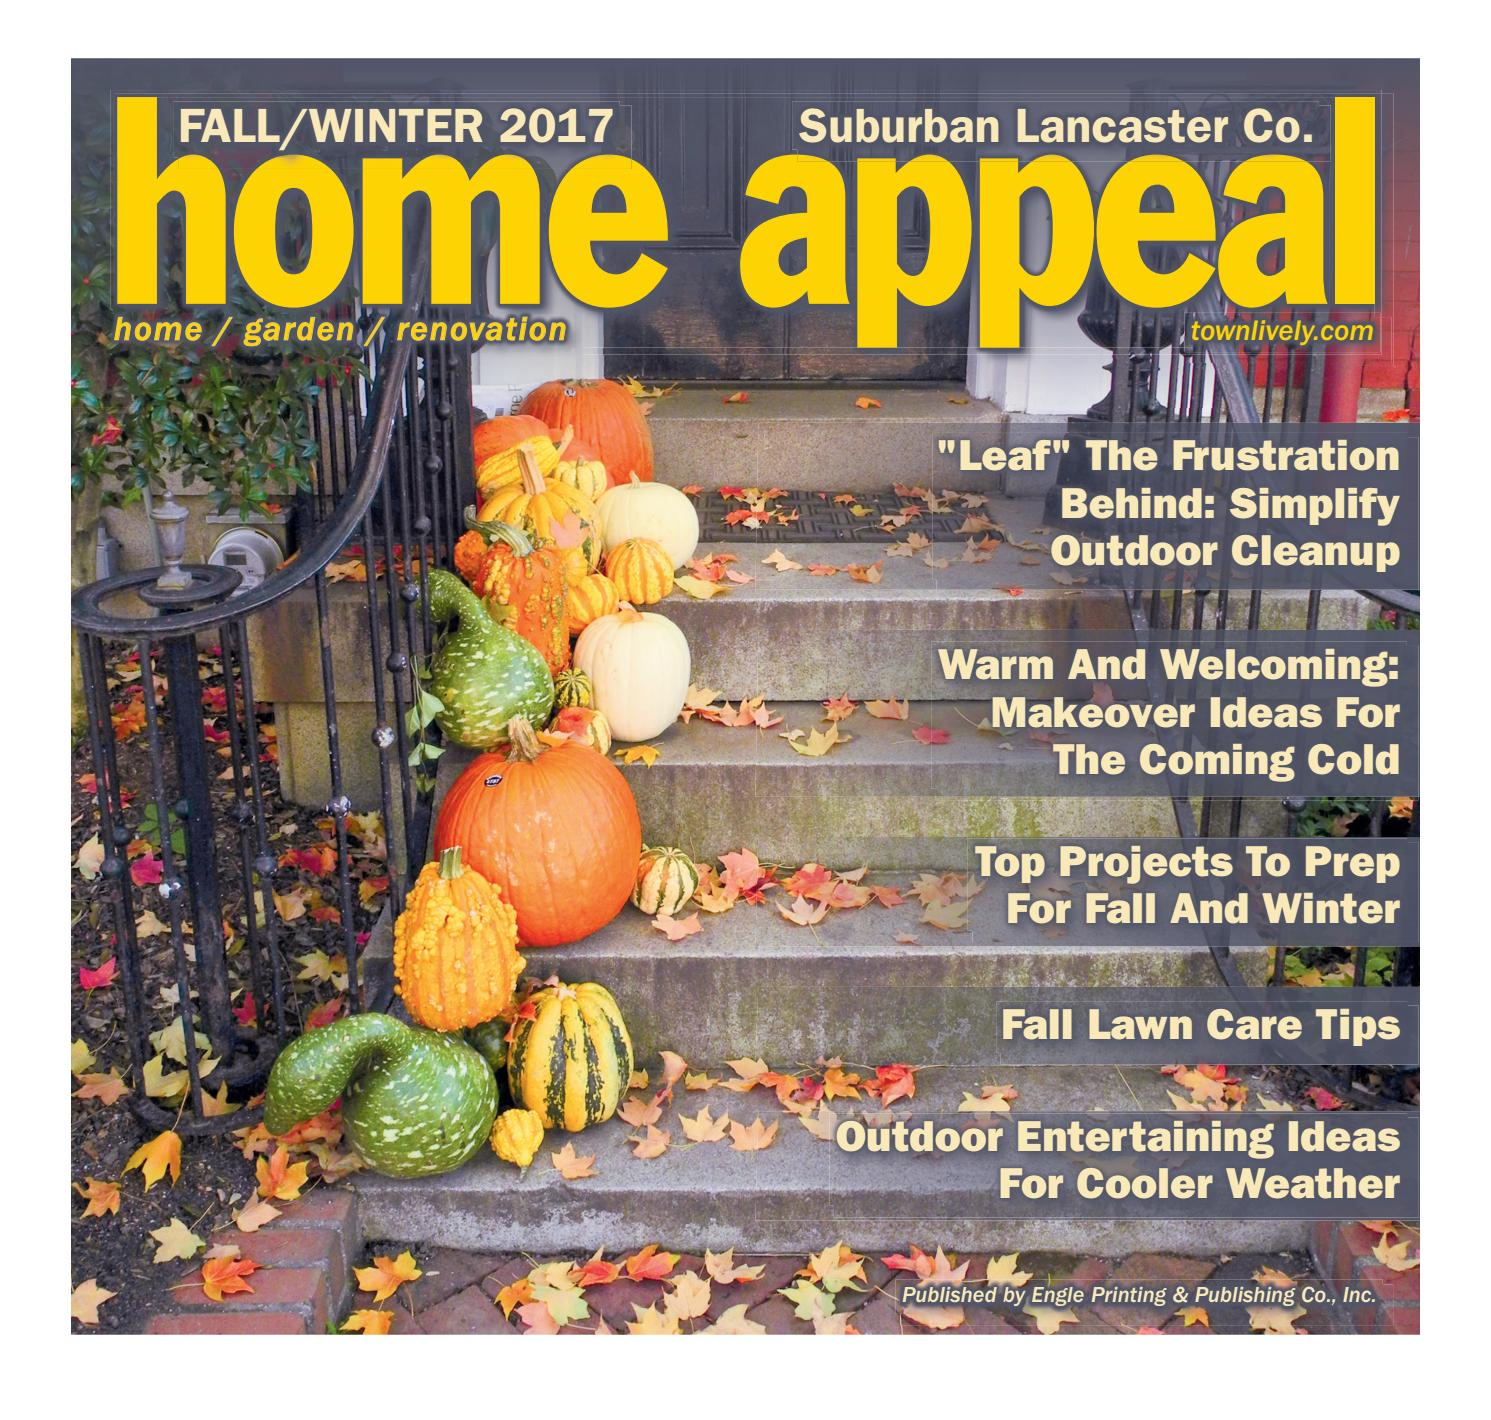 Suburban Lancaster Home Appeal Fall/Winter 2017 By Engle